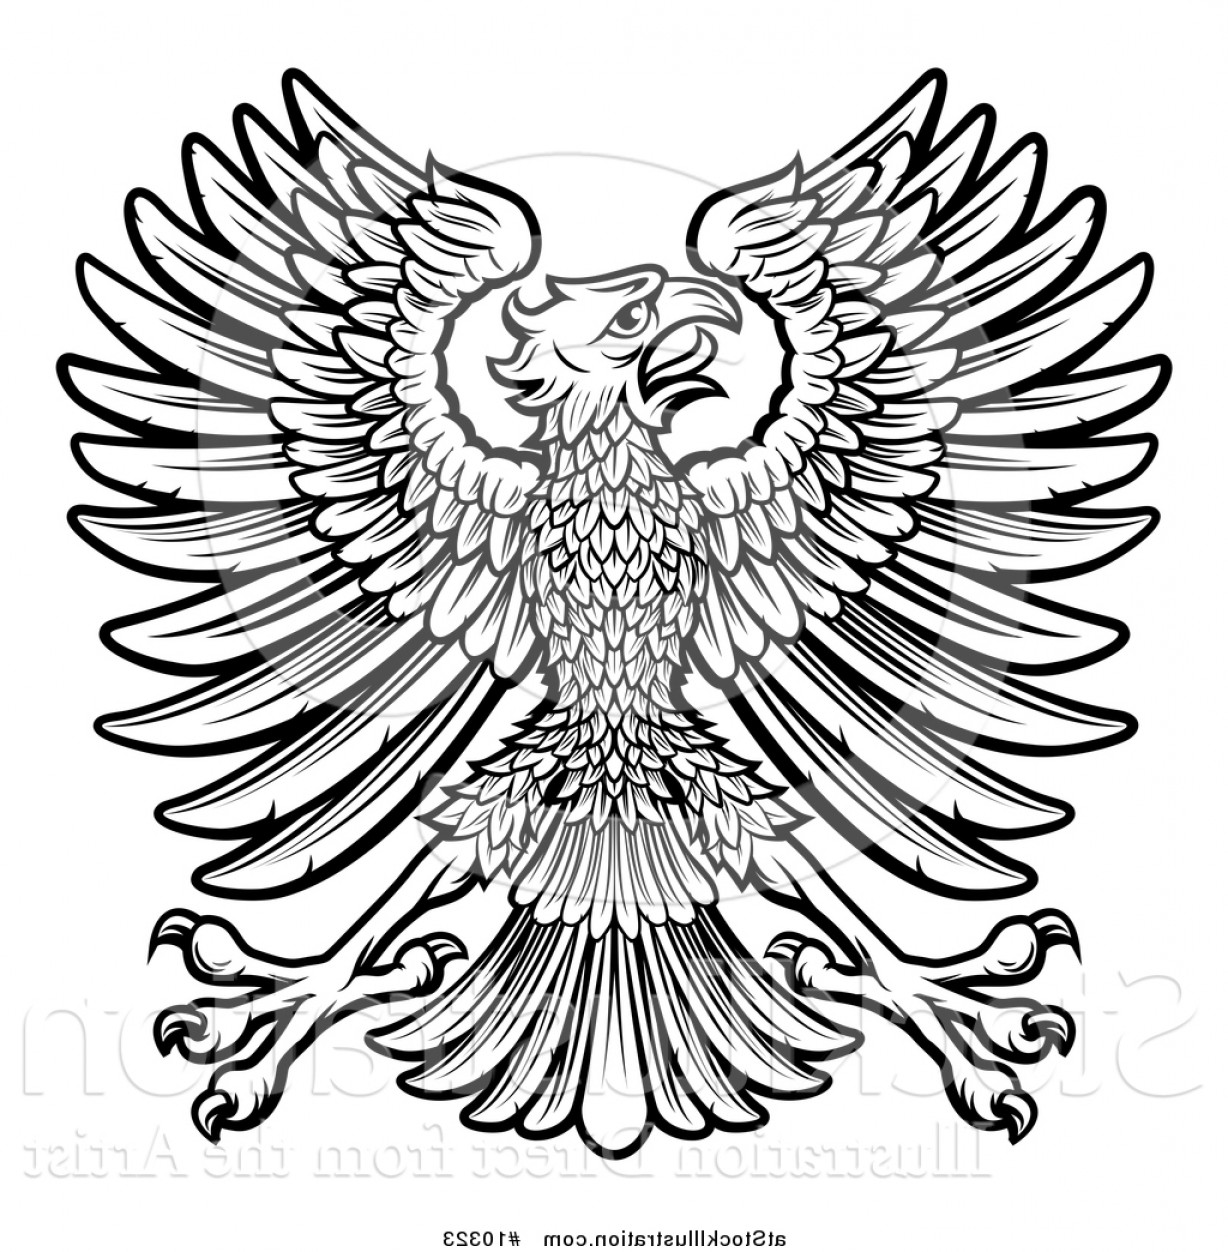 Vector Hi Res Black And White Wing: Vector Illustration Of A Black And White Imperial Coat Of Arms Eagle By Atstockillustration